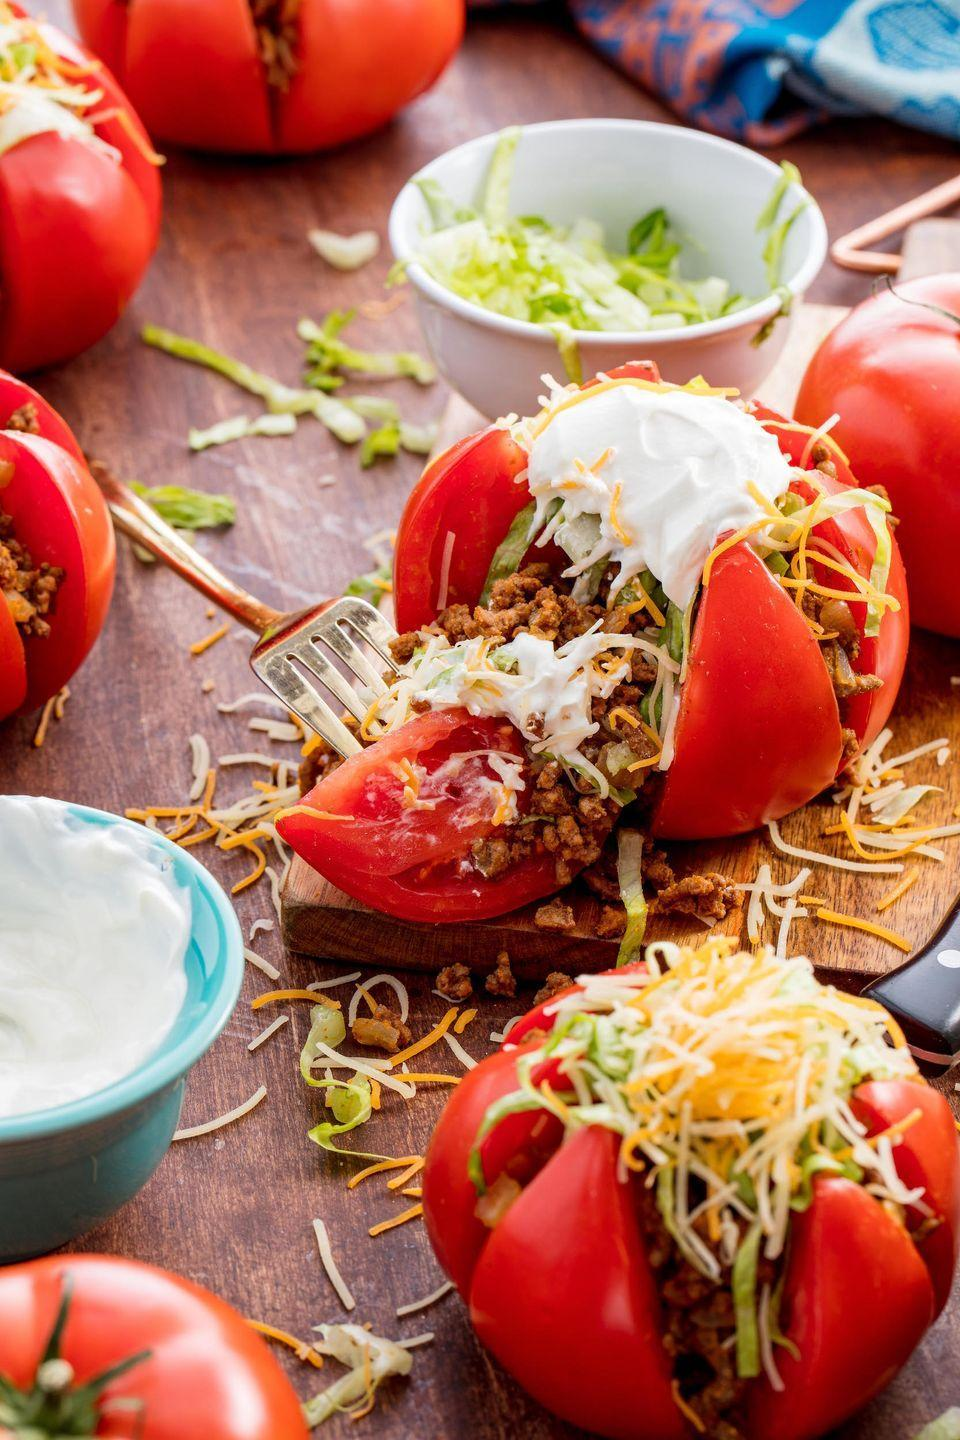 "<p>These are the prettiest low-carb tacos you'll ever see.</p><p>Get the recipe from <a href=""https://www.delish.com/cooking/recipe-ideas/recipes/a54559/taco-tomatoes-recipe/"" rel=""nofollow noopener"" target=""_blank"" data-ylk=""slk:Delish"" class=""link rapid-noclick-resp"">Delish</a>.</p>"